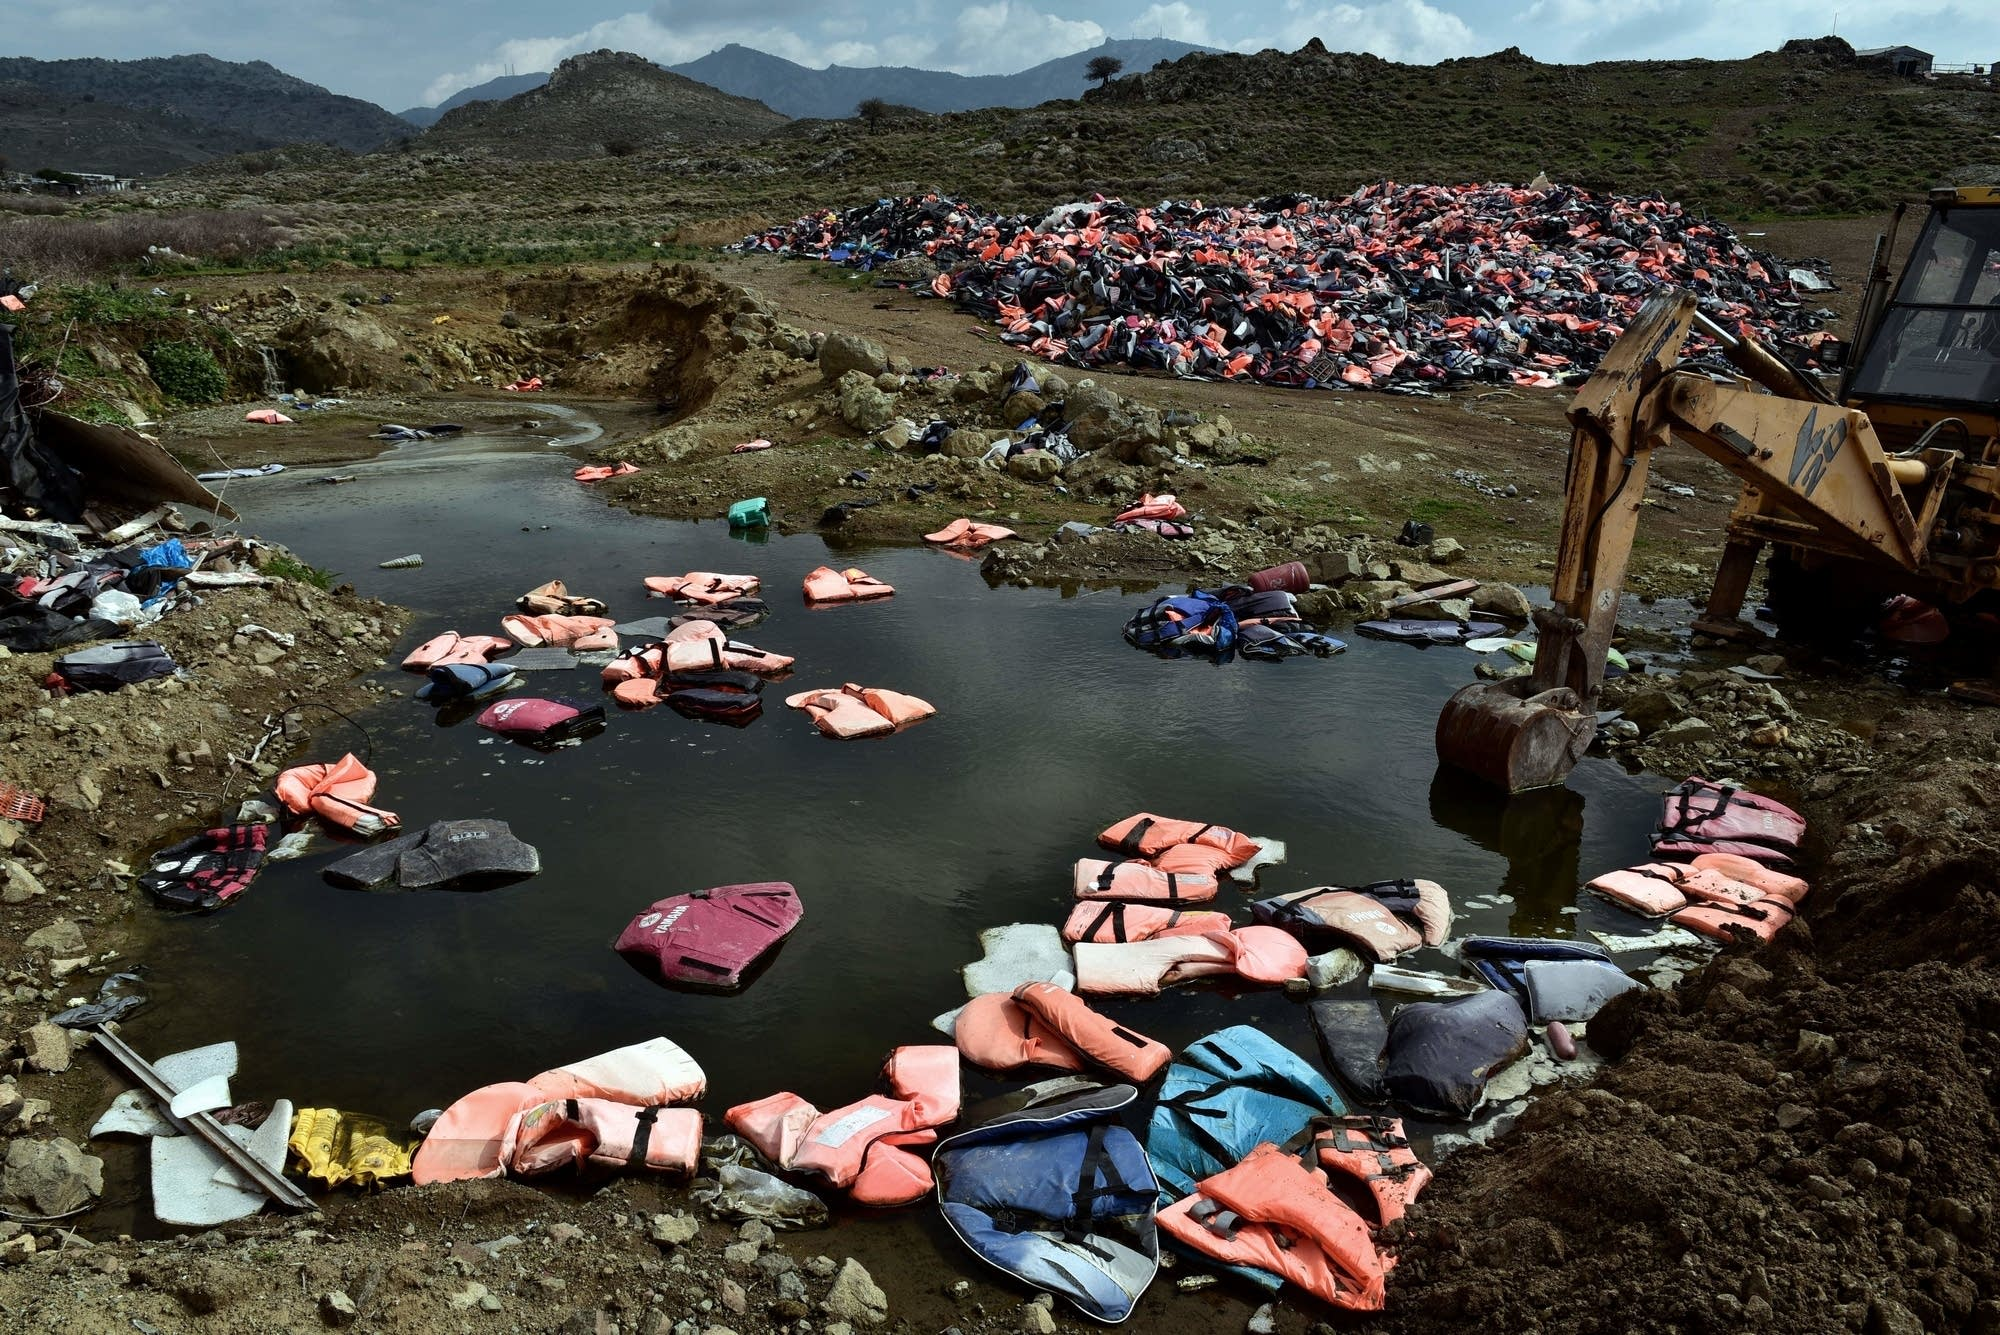 Piles of life jackets left by refugees who arrived on Lesbos lie at a dump.